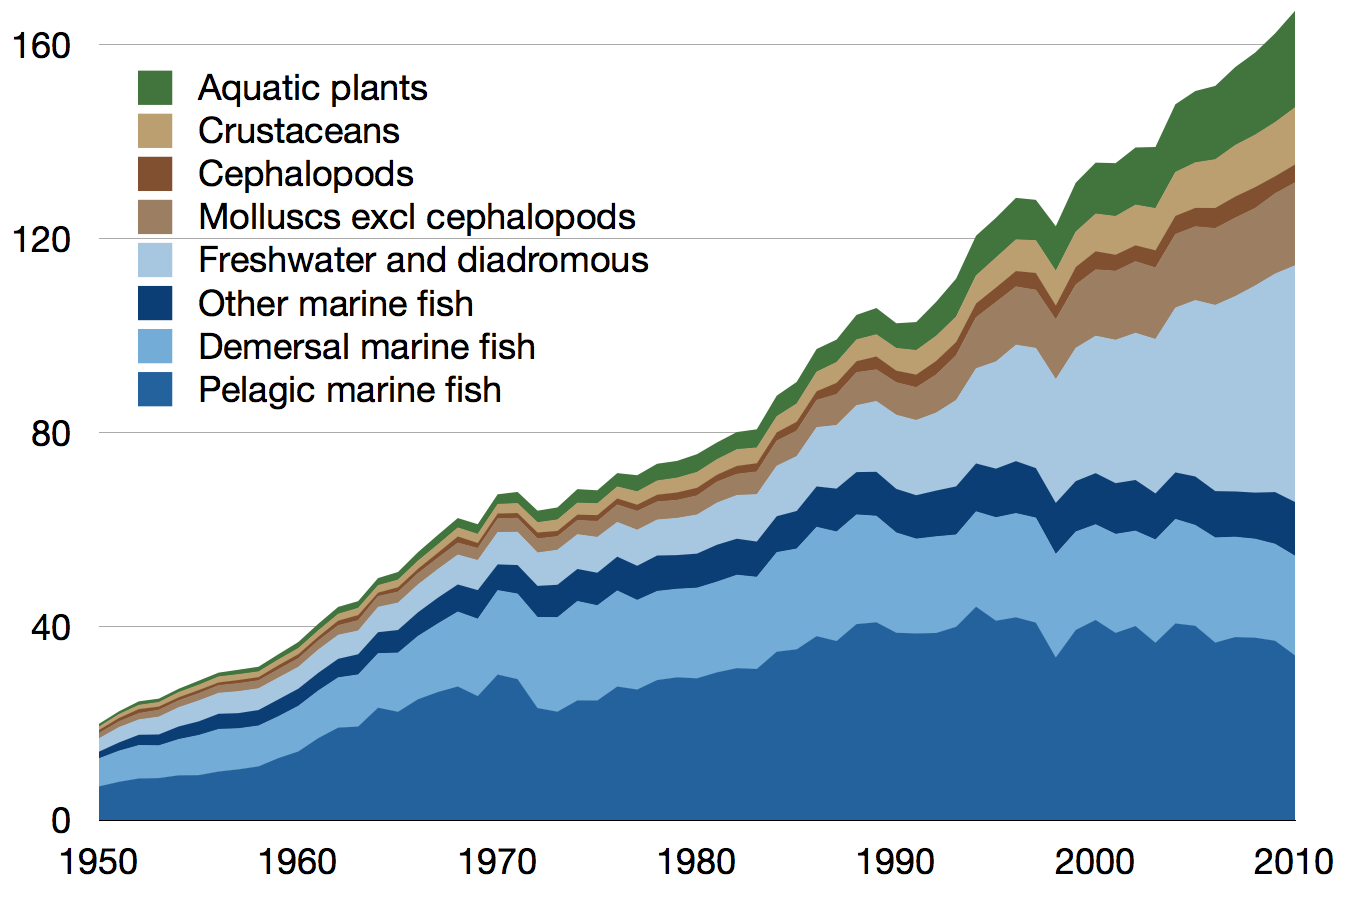 Freshwater fish england - World Fisheries Harvest Both Wild And Farmed In Million Tonnes 1950 2010